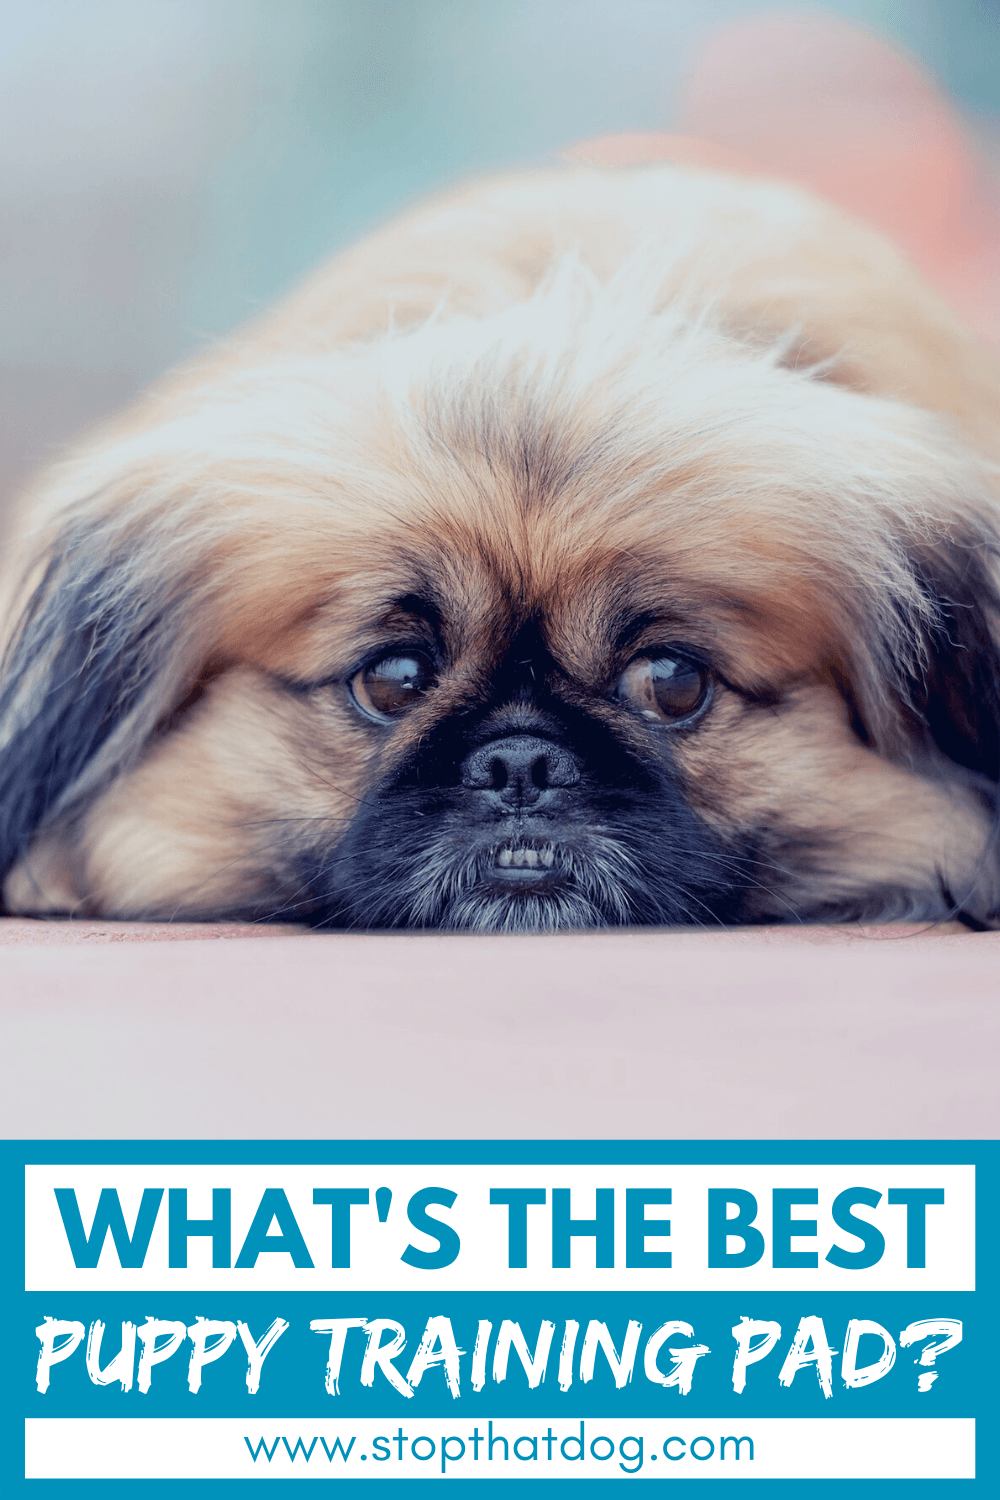 Want the best puppy training pads? If so, this guide reveals the best options on the market. These won\'t let you down. Come and take a look.